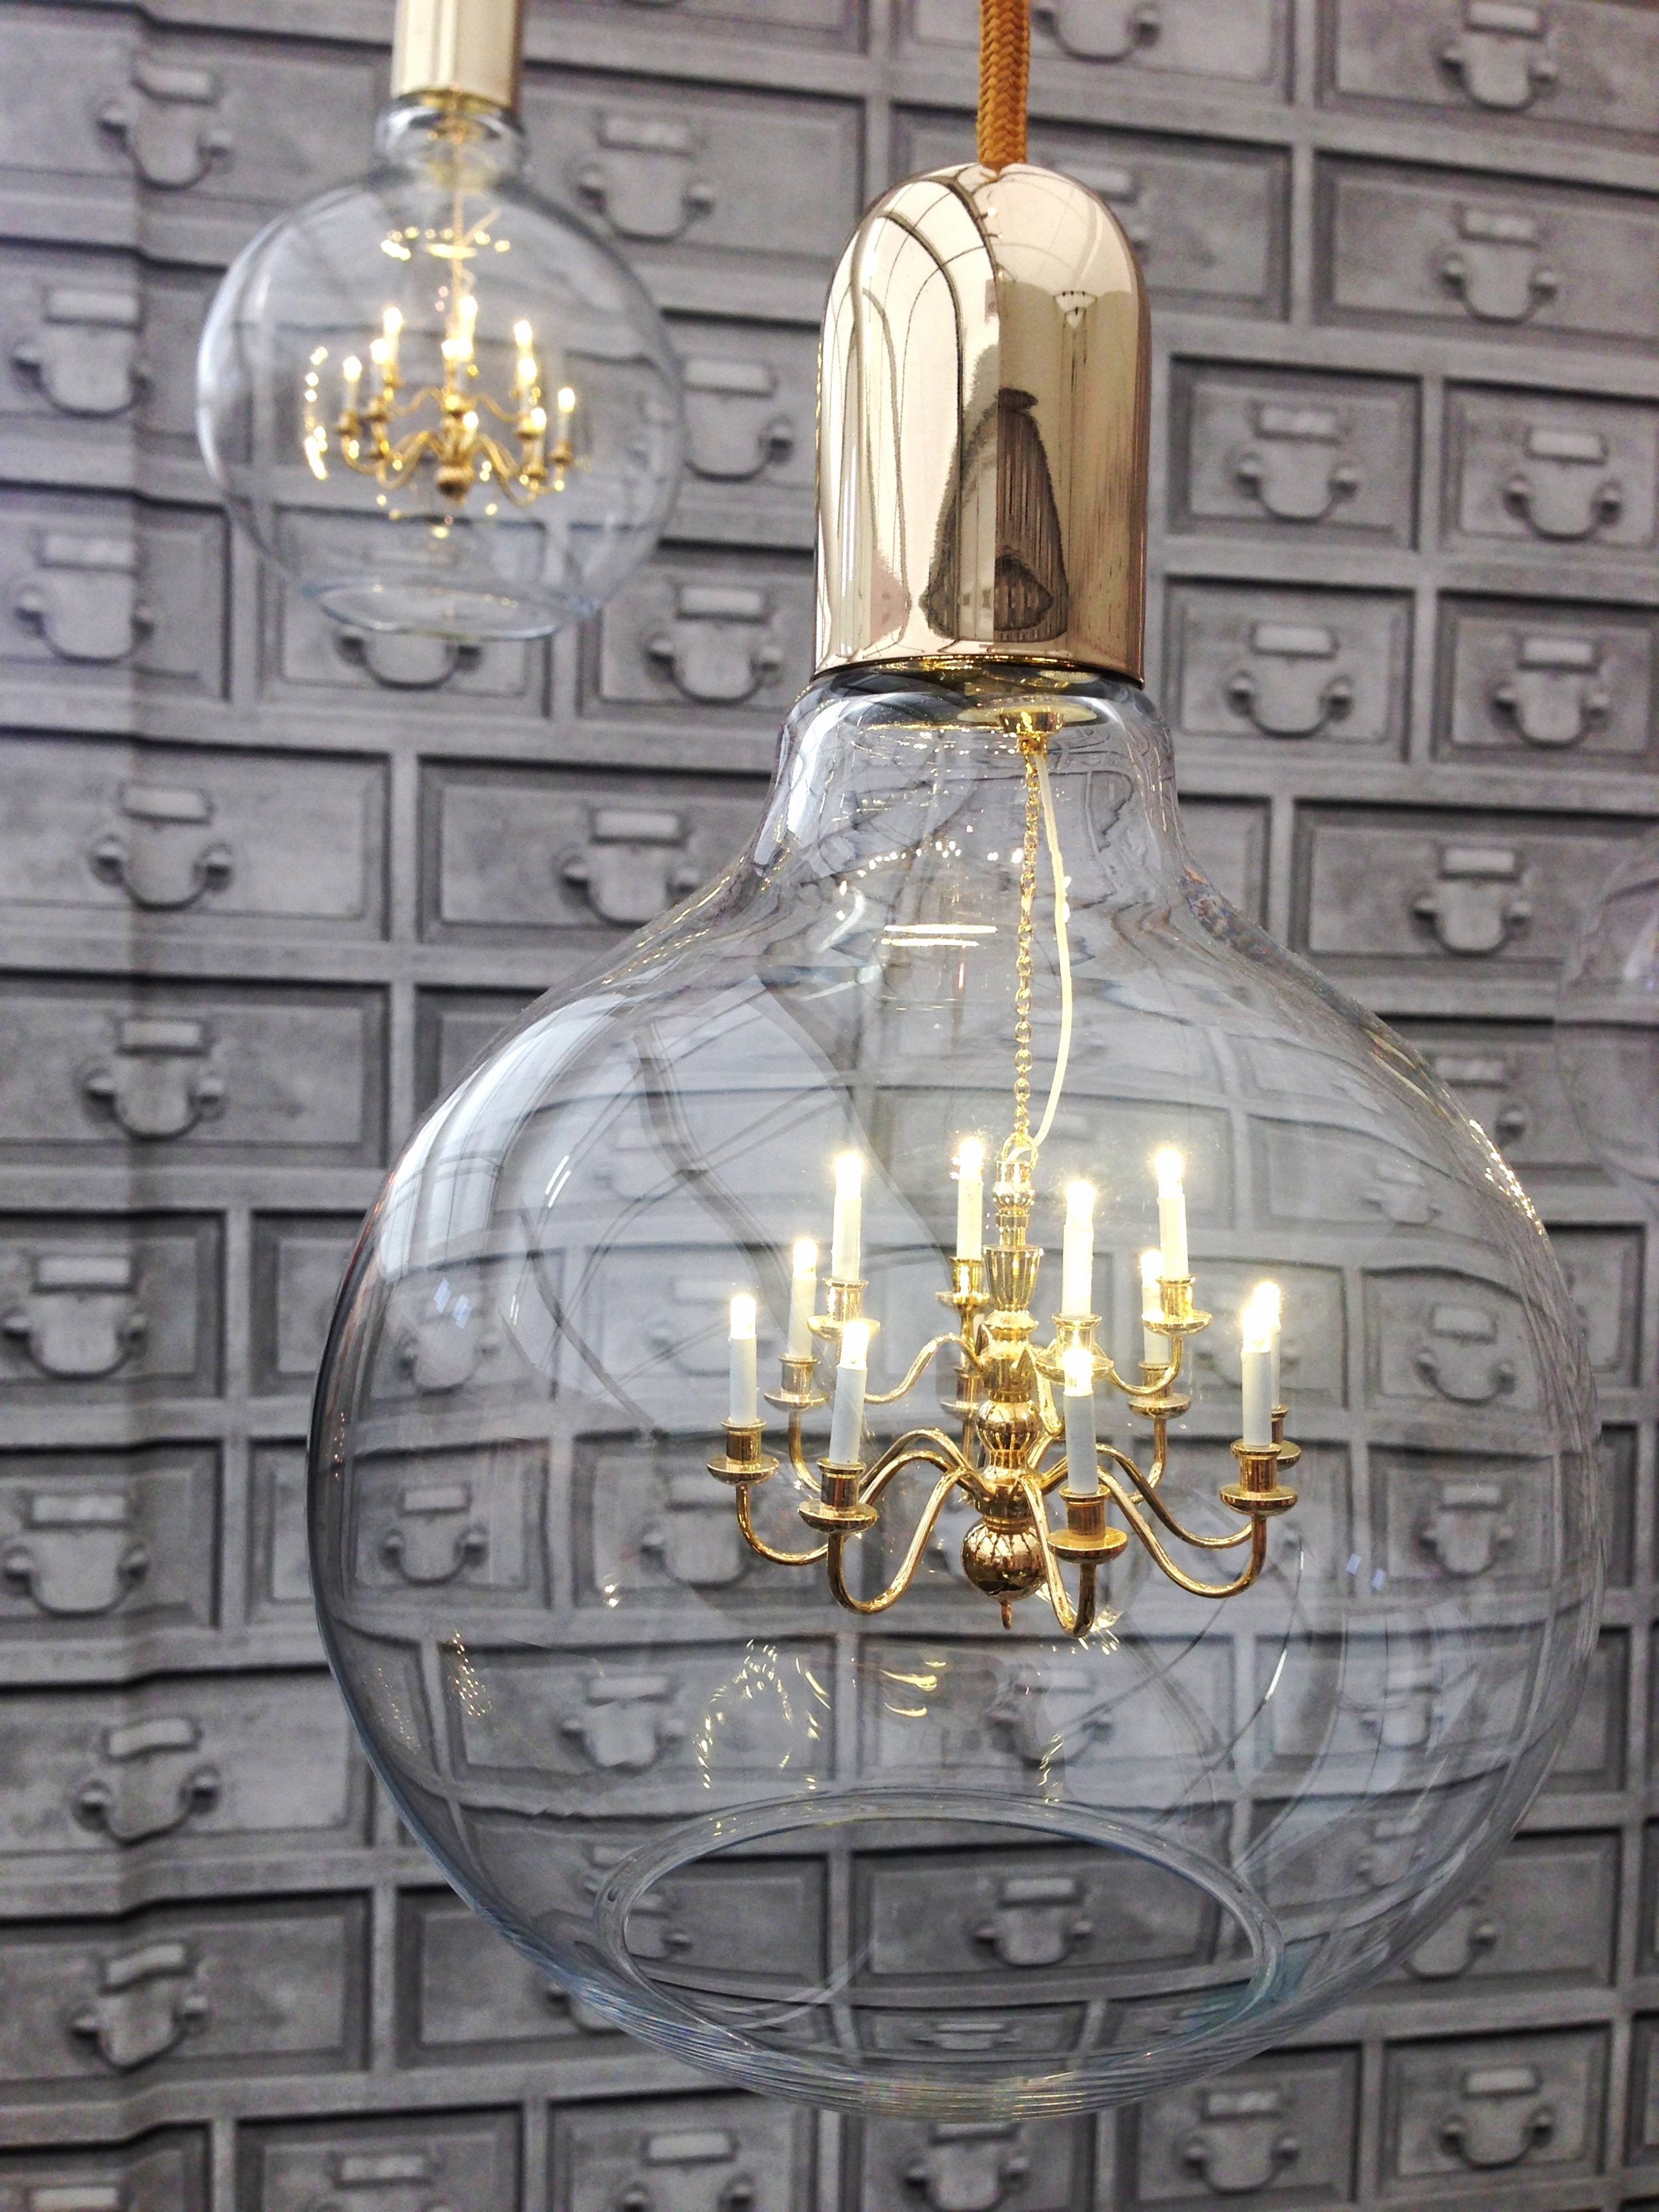 Mineheart  eclectic light with tiny chandelier inside